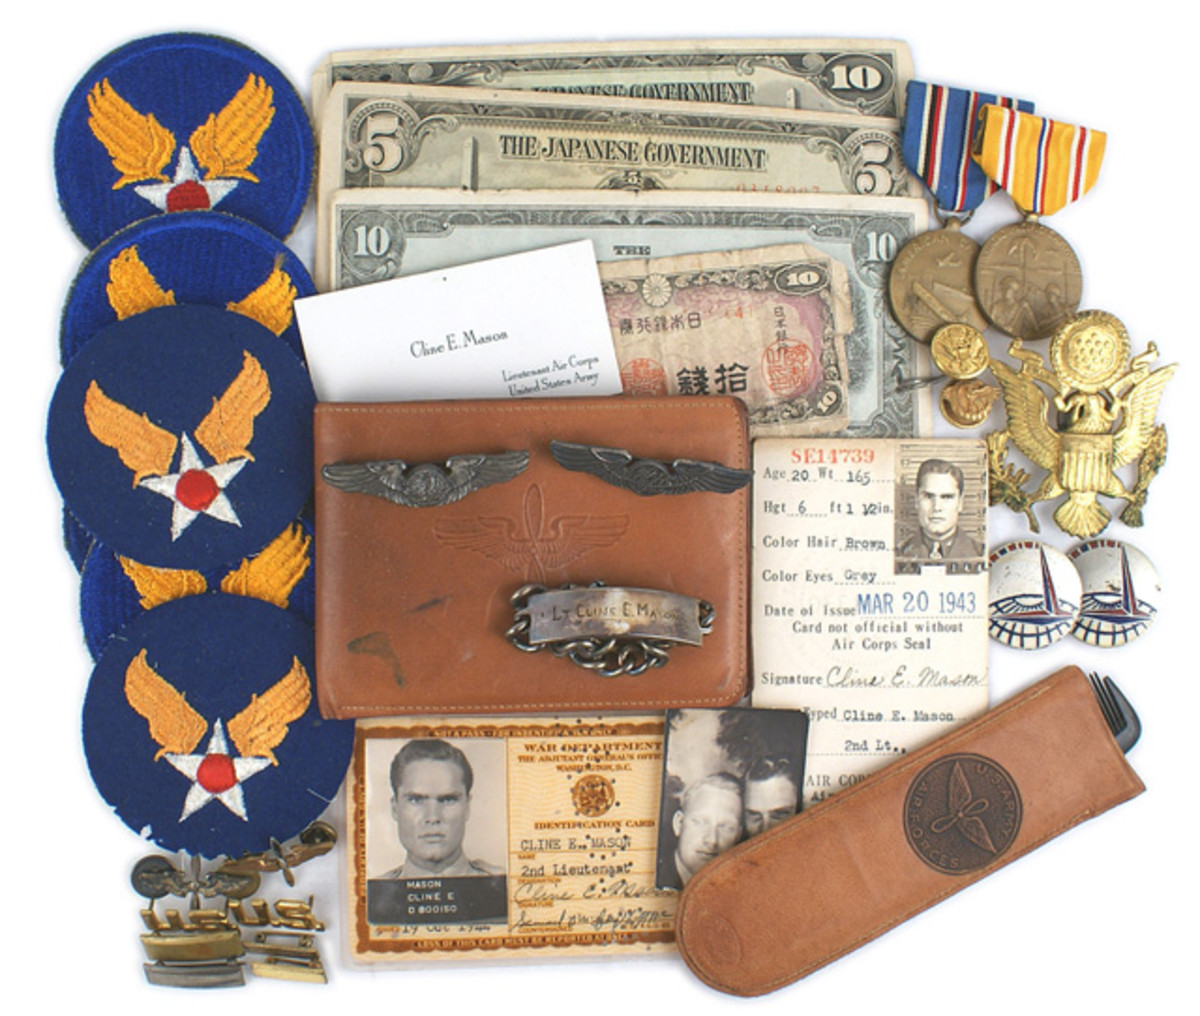 Items pertaining to 1st LT. Cline E. Mason, who served with the Army Air Force in the CBI Theater of Operations, to include his full uniform and leather jacket (minimum bid: $2,000).